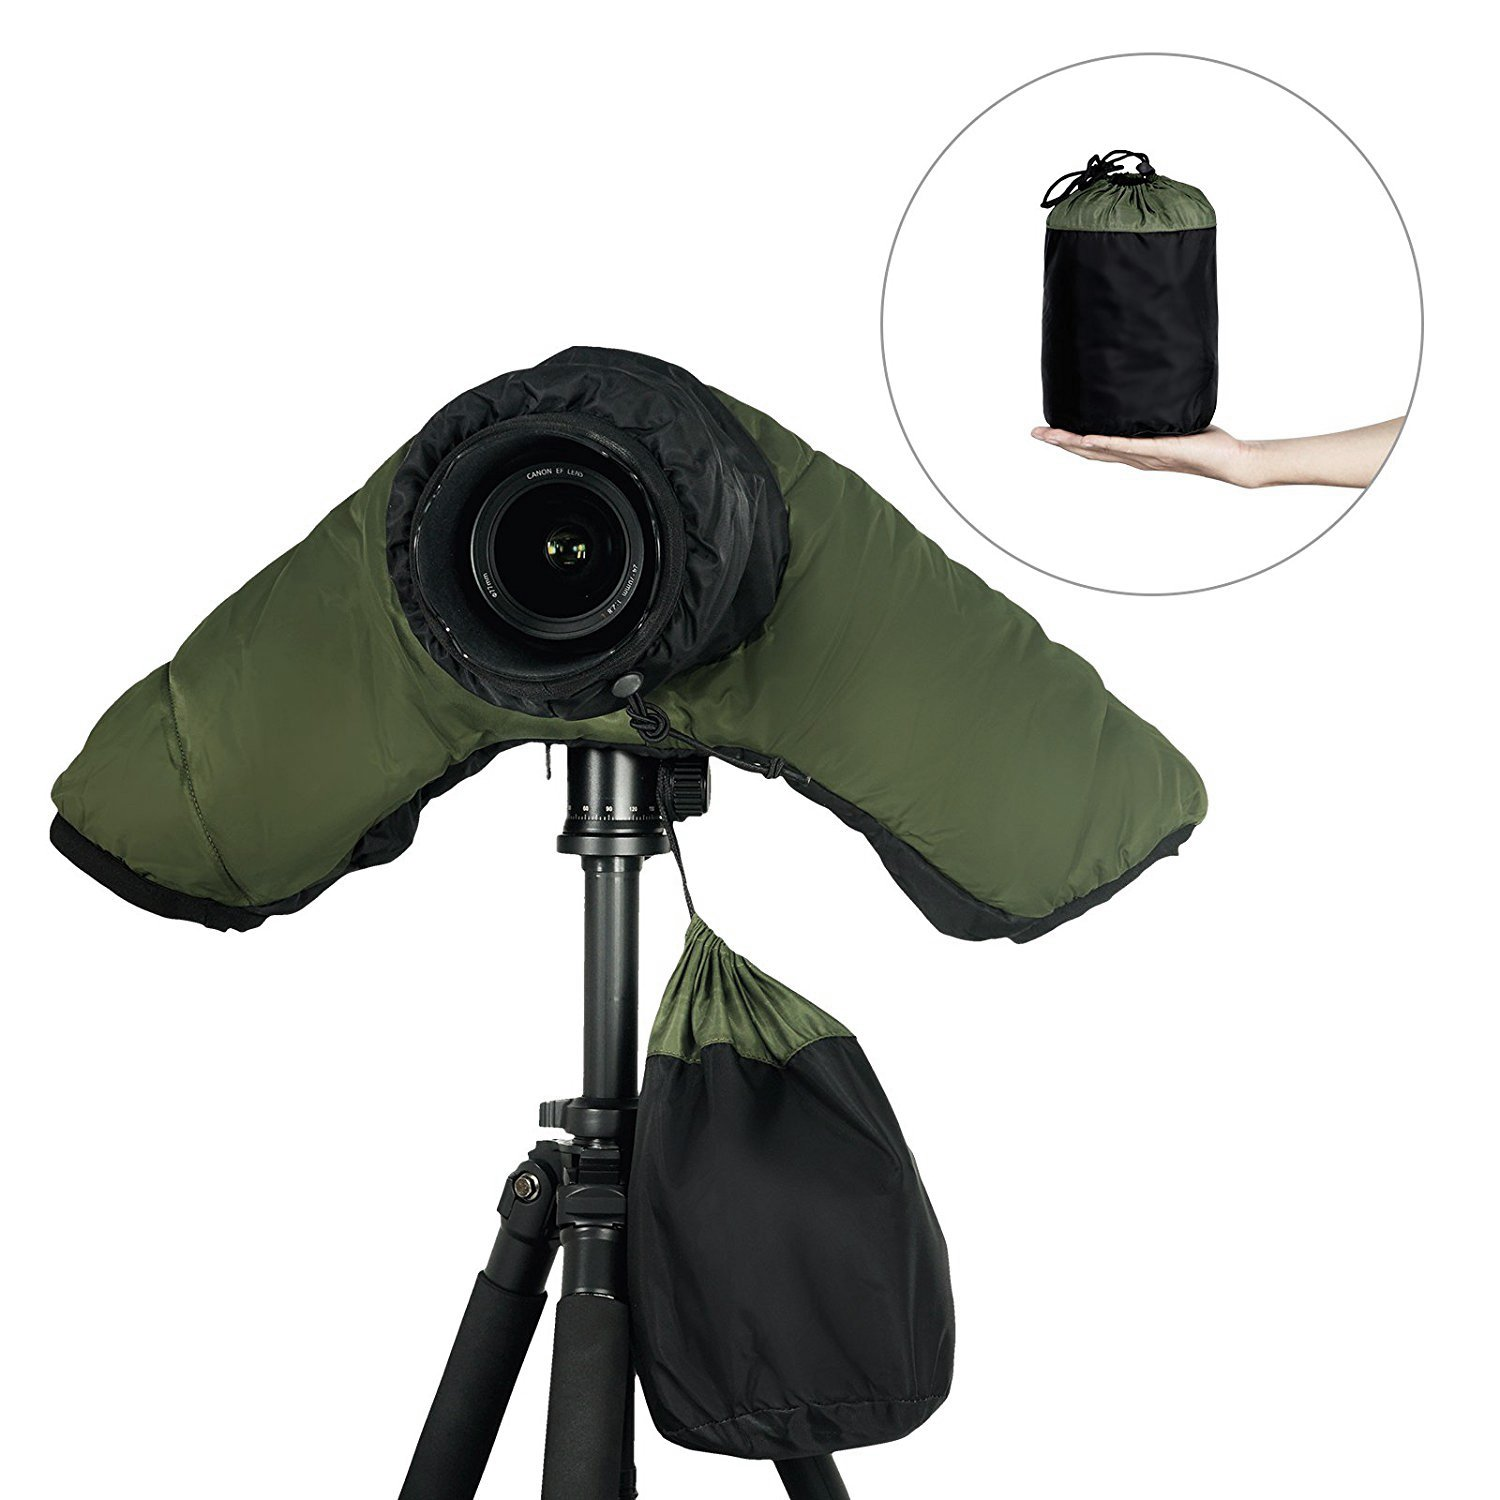 Mekingstudio Cold-proof Waterproof Camera Rain Cover Protector Rainproof with Hand Sleeves for DSLR SLR Cameras Army Green